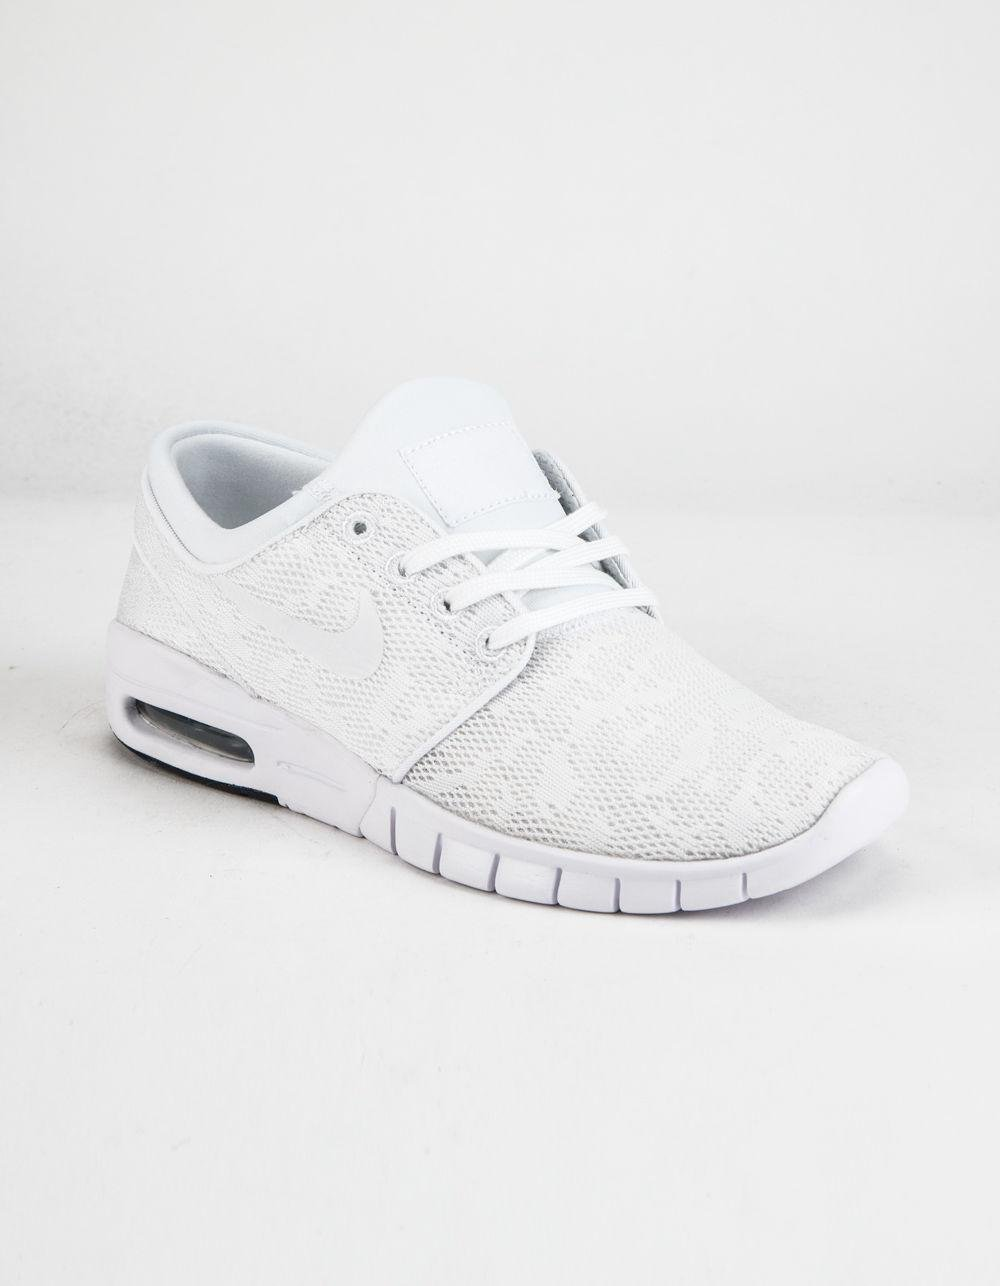 6a1dd06c9ff4 Lyst - Nike Sb Stefan Janoski Max Shoes in White for Men - Save 4%